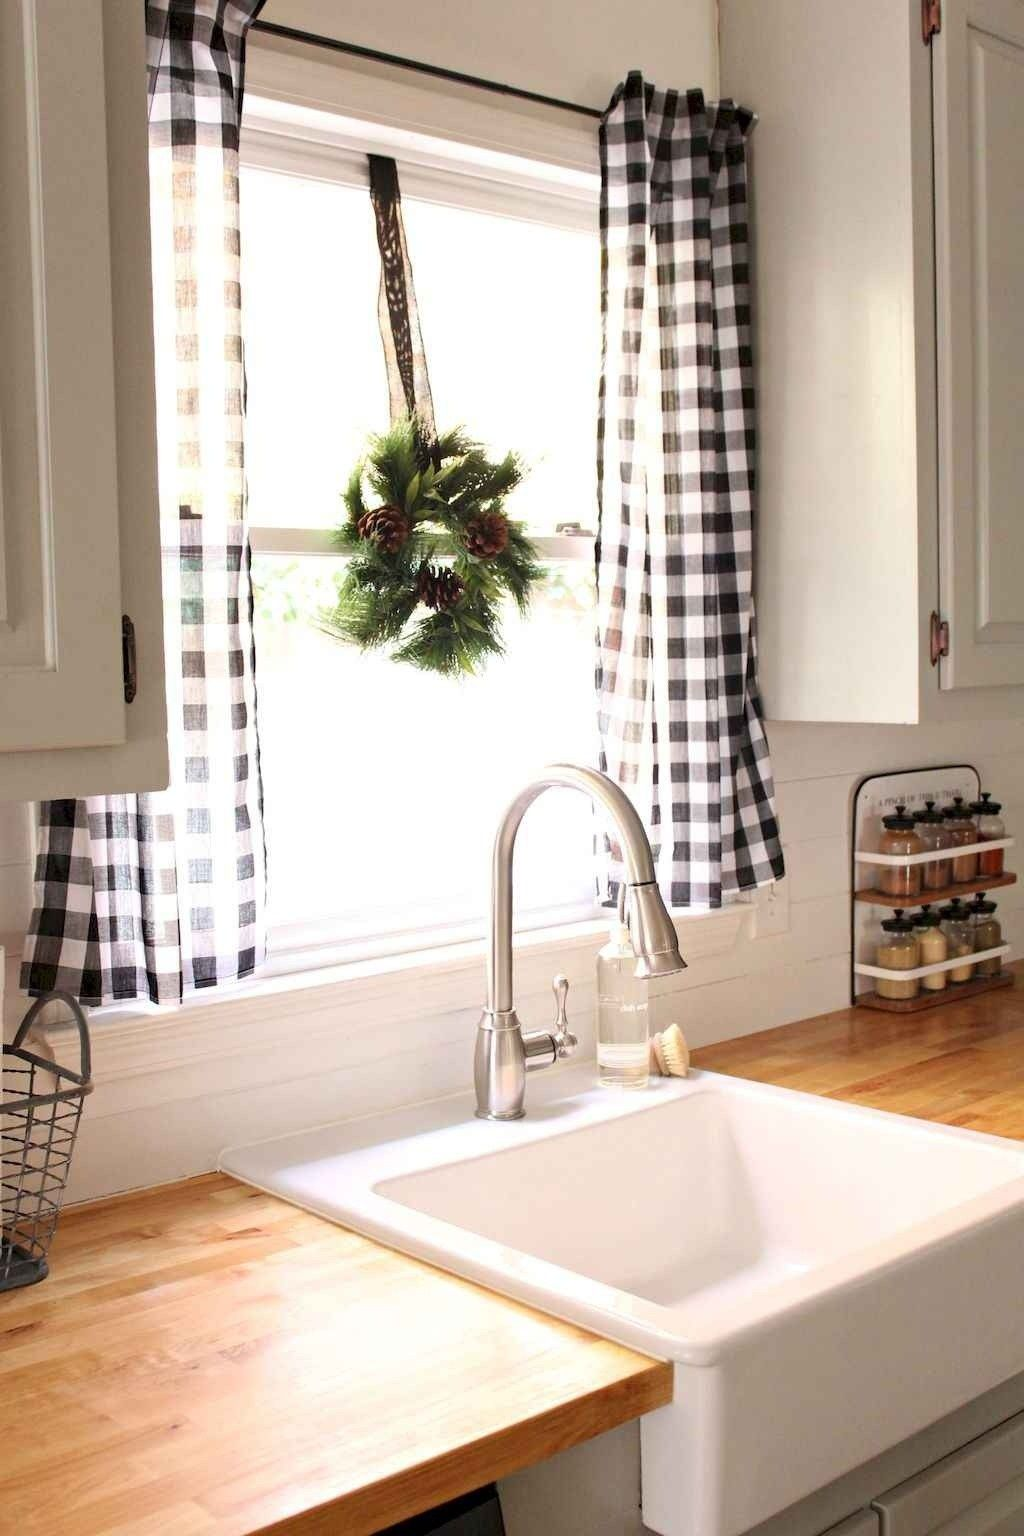 a6667e8ebe24b645982f6627d450ecc4 - Better Homes And Gardens Ivy Kitchen Curtain Set